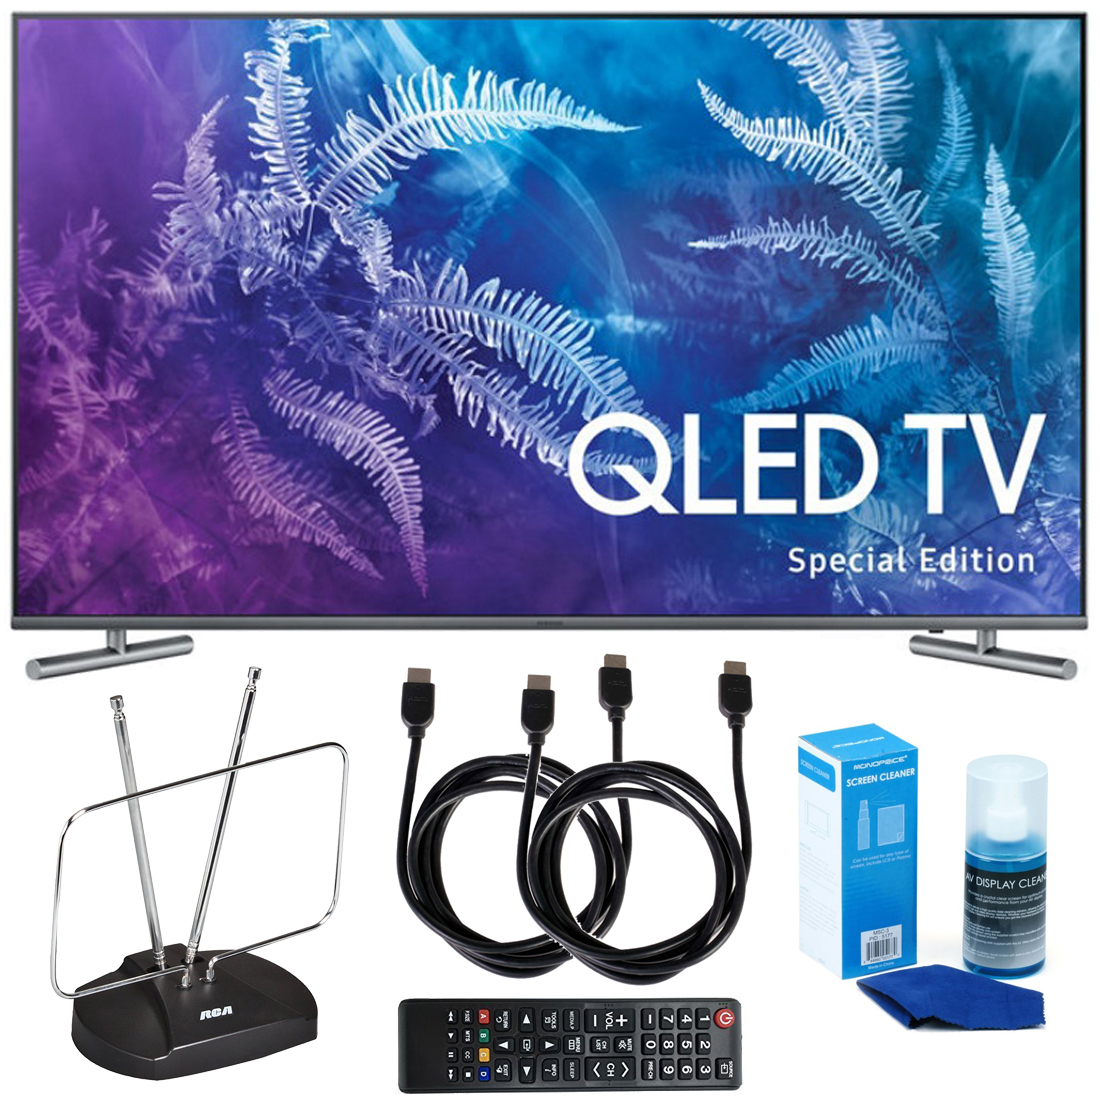 "Samsung QN49Q6FAMFXZA Special Edition 49"" Class Q6F QLED 4K TV (2017 Model) with HDTV and FM Antenna, Two 6 Foot HDMI Cables, And Professional Screen Cleaning Kit Bundle"